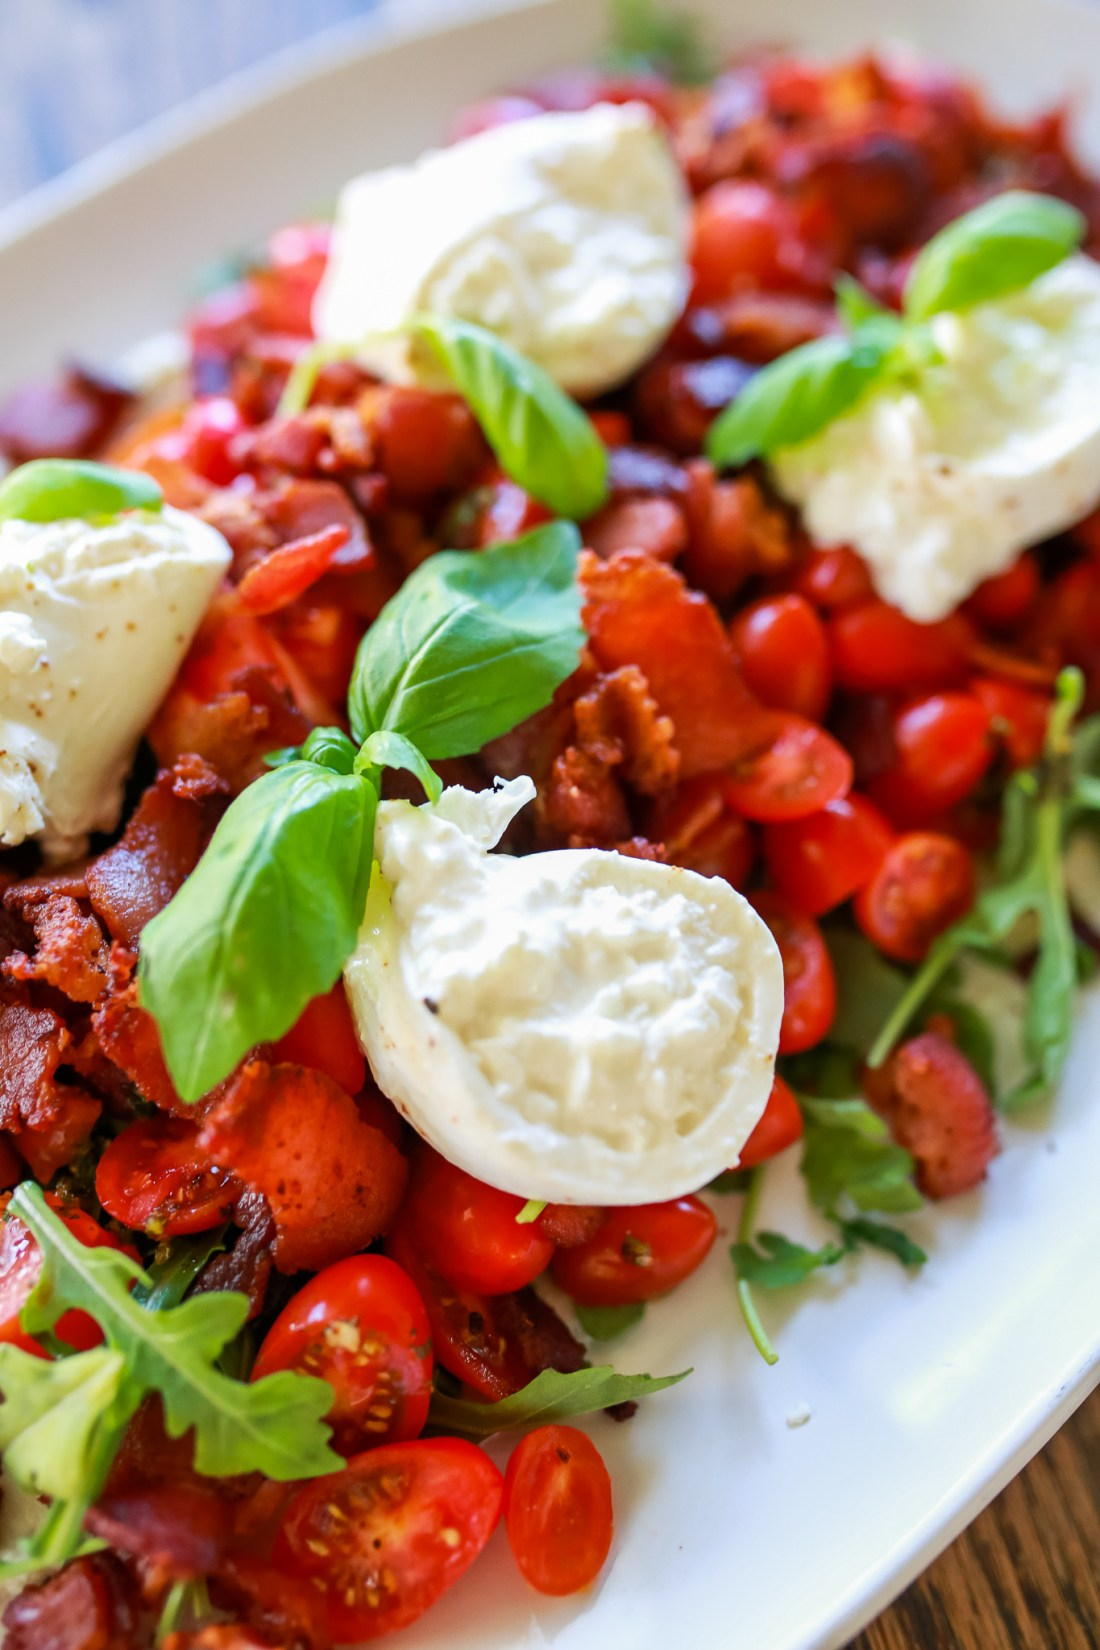 BLT Burrata Salad! Easy and delicious with homemade basil-chimichurri dressing